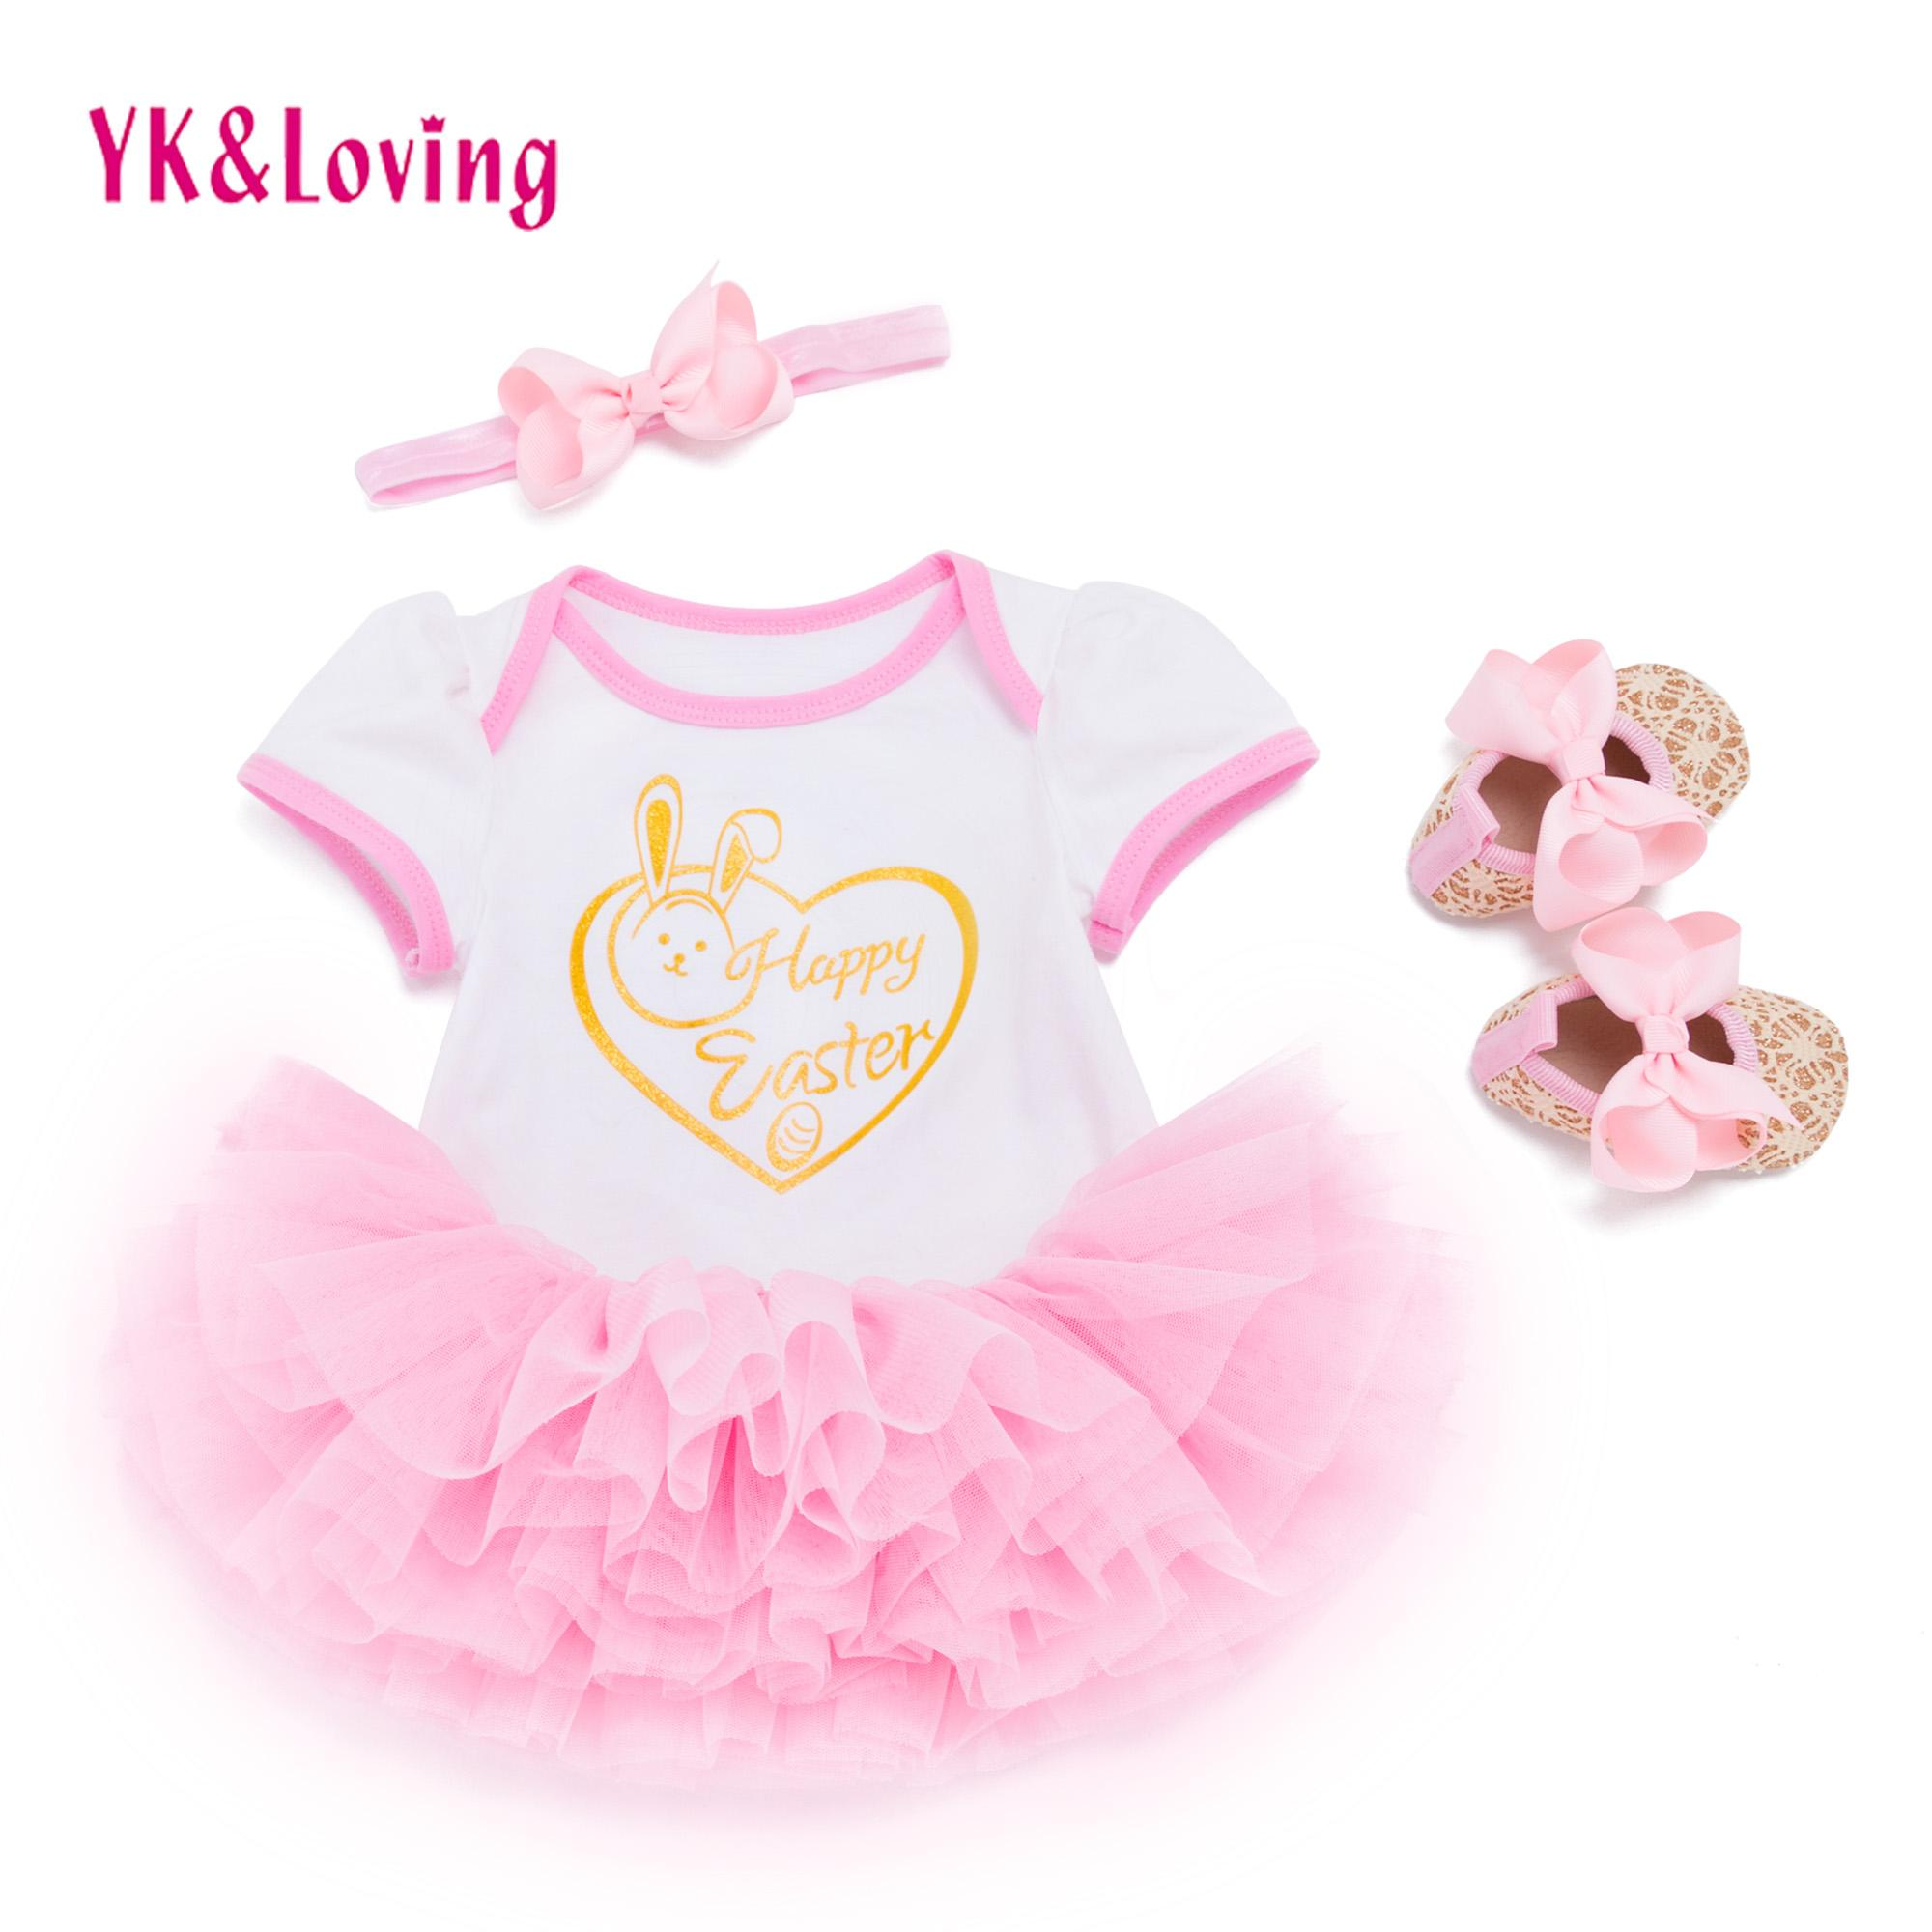 Baby Girl Clothes Pink Tutu Skirt Romper Shoes Suit Easter Infant